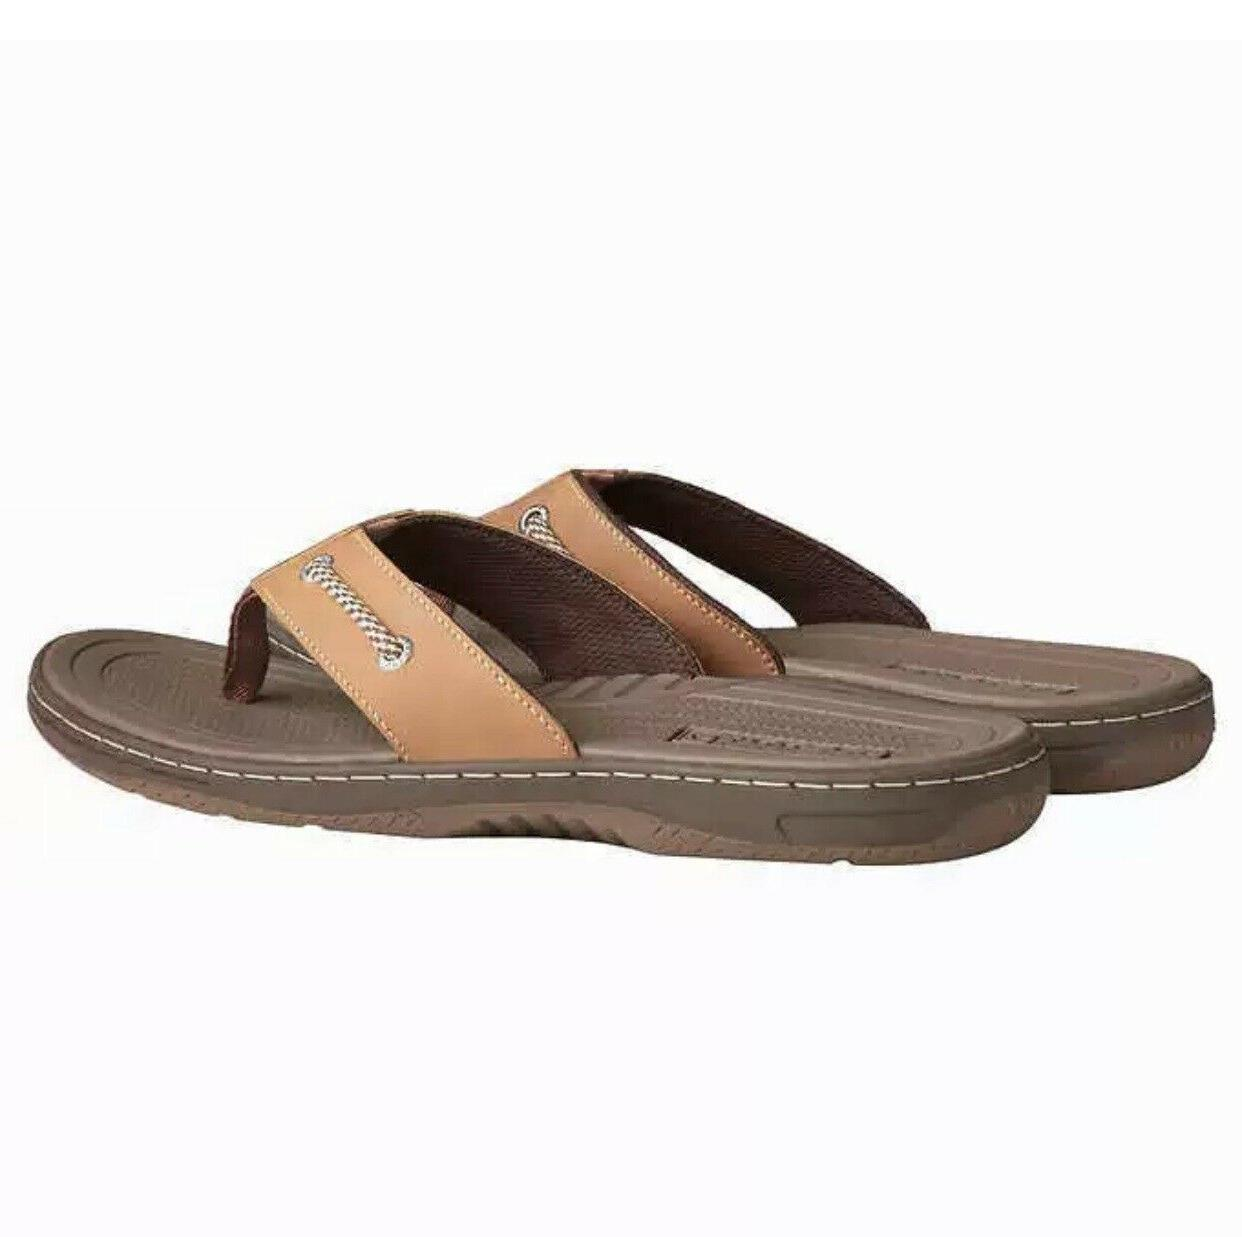 Sperry, Sandal